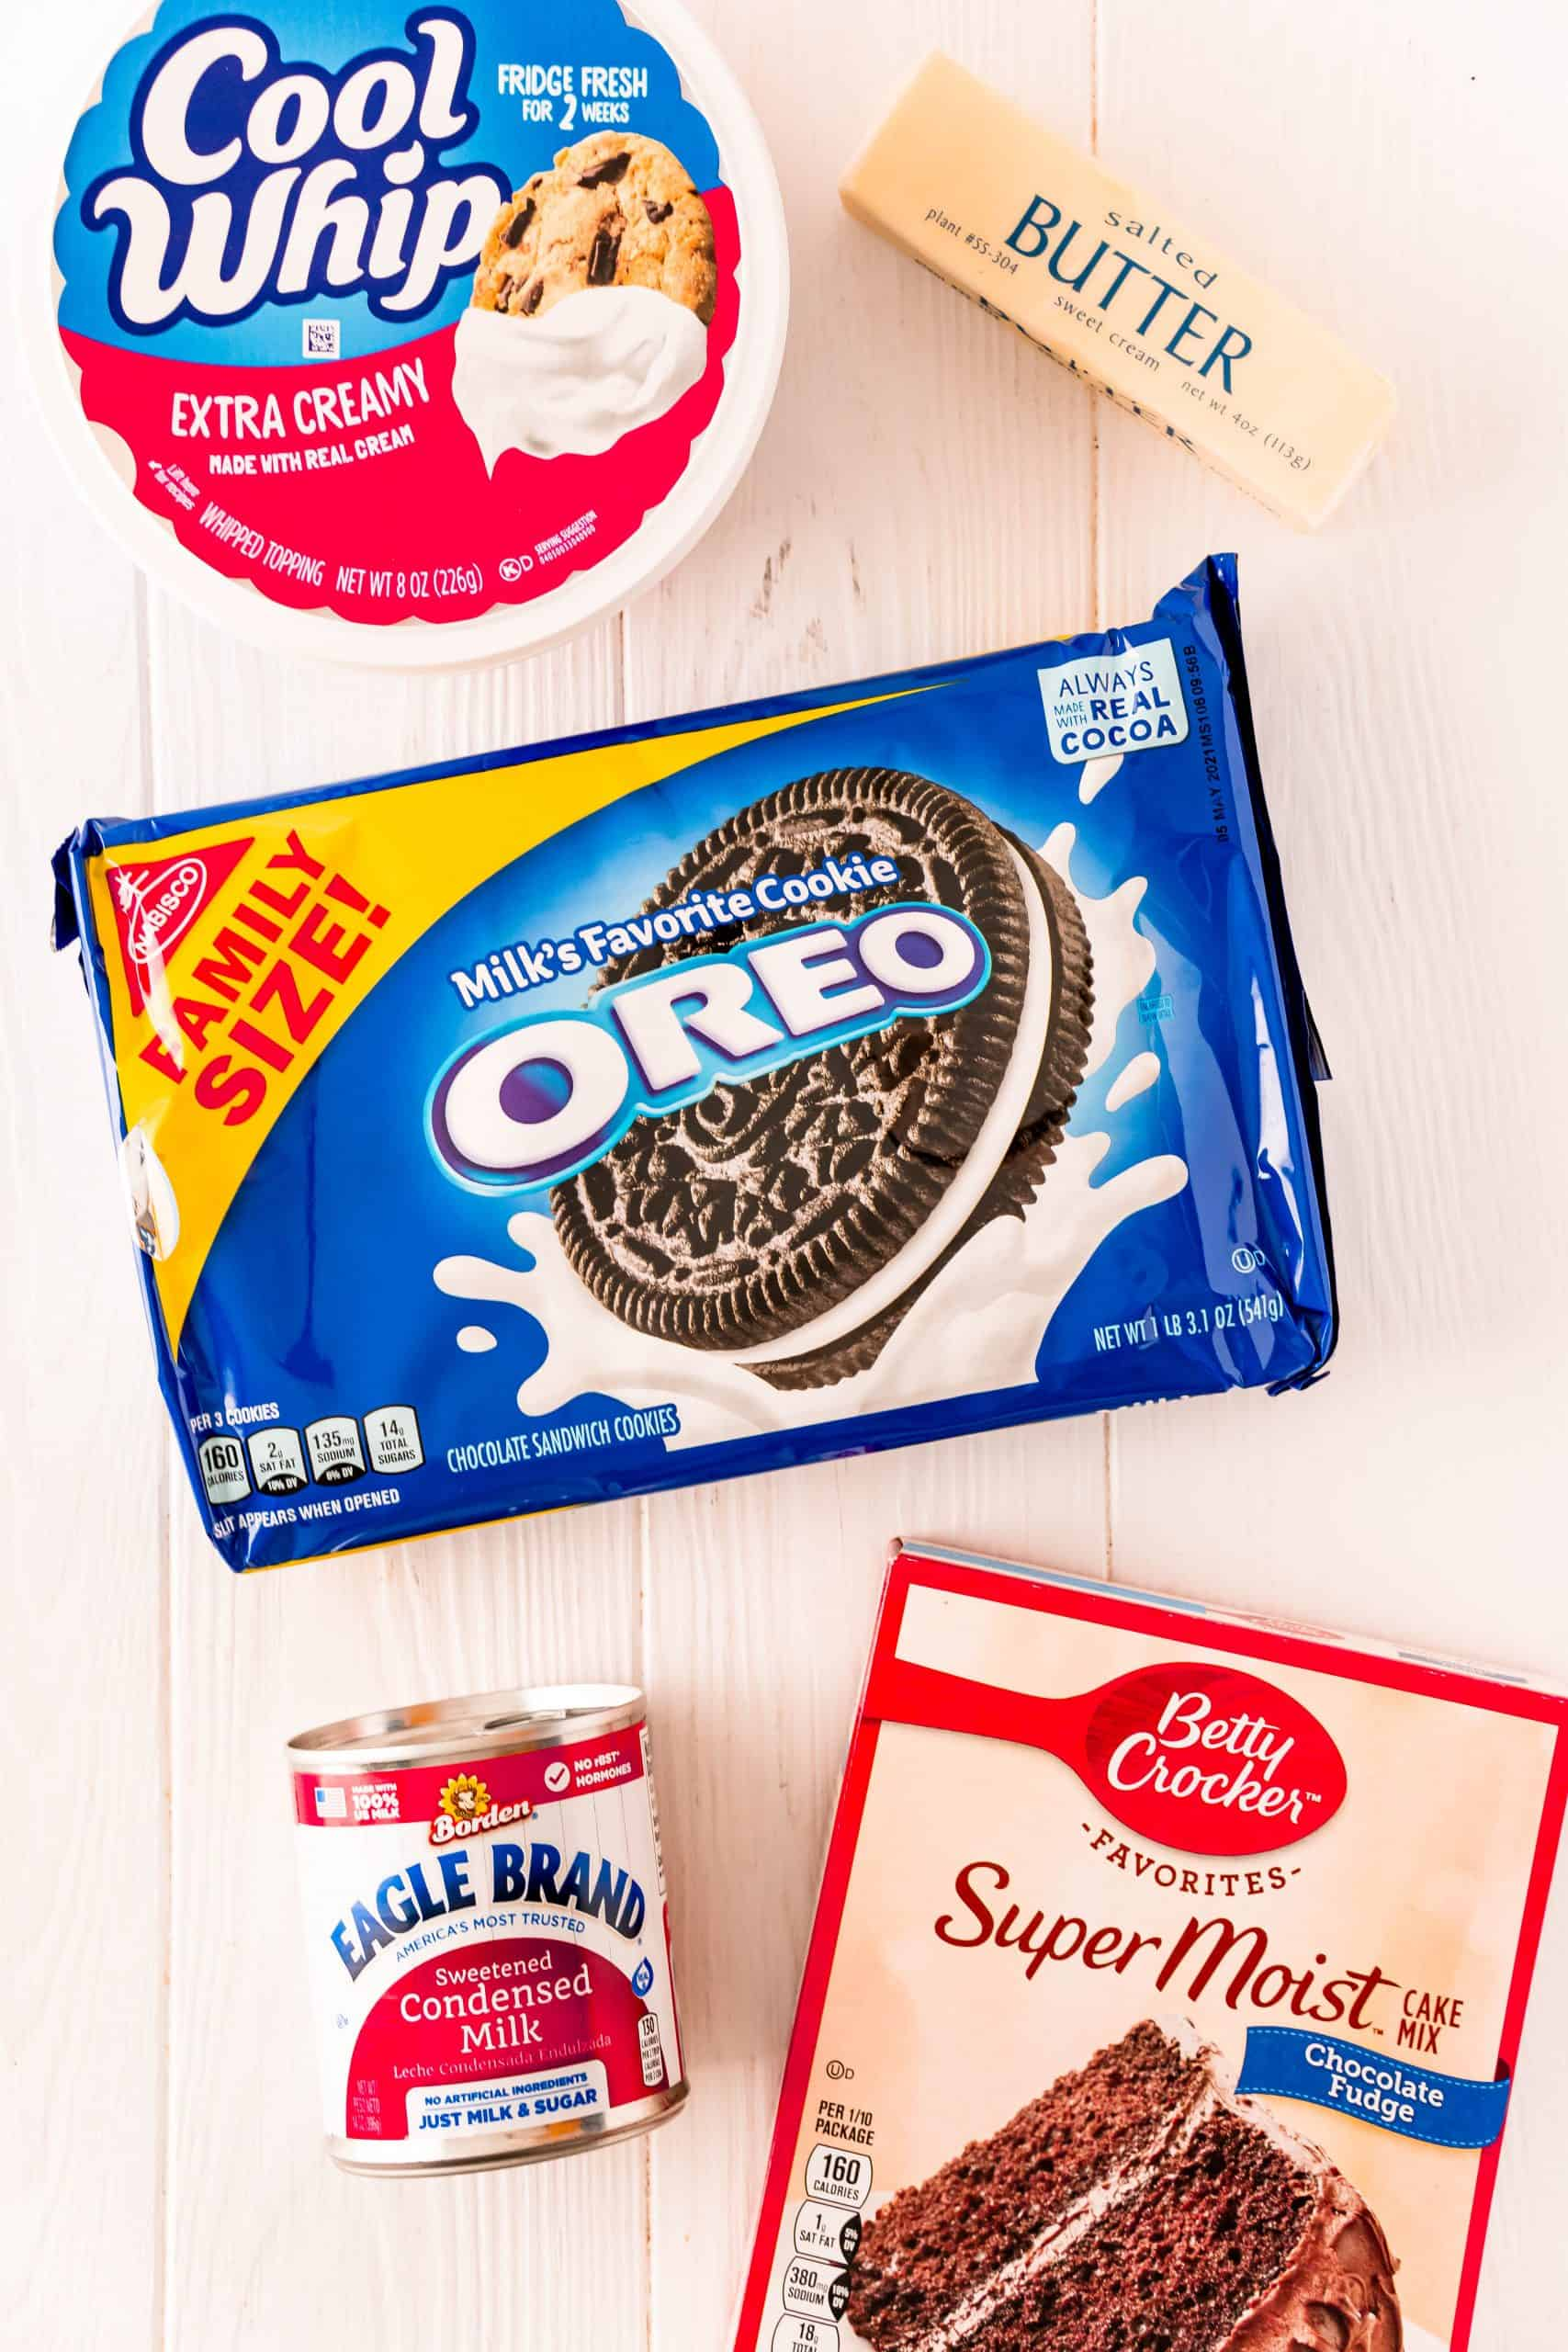 Ingredients needed for Oreo Dump Cake: Oreo cookies, sweetened condensed milk, whipped topping, chocolate cake mix and butter.